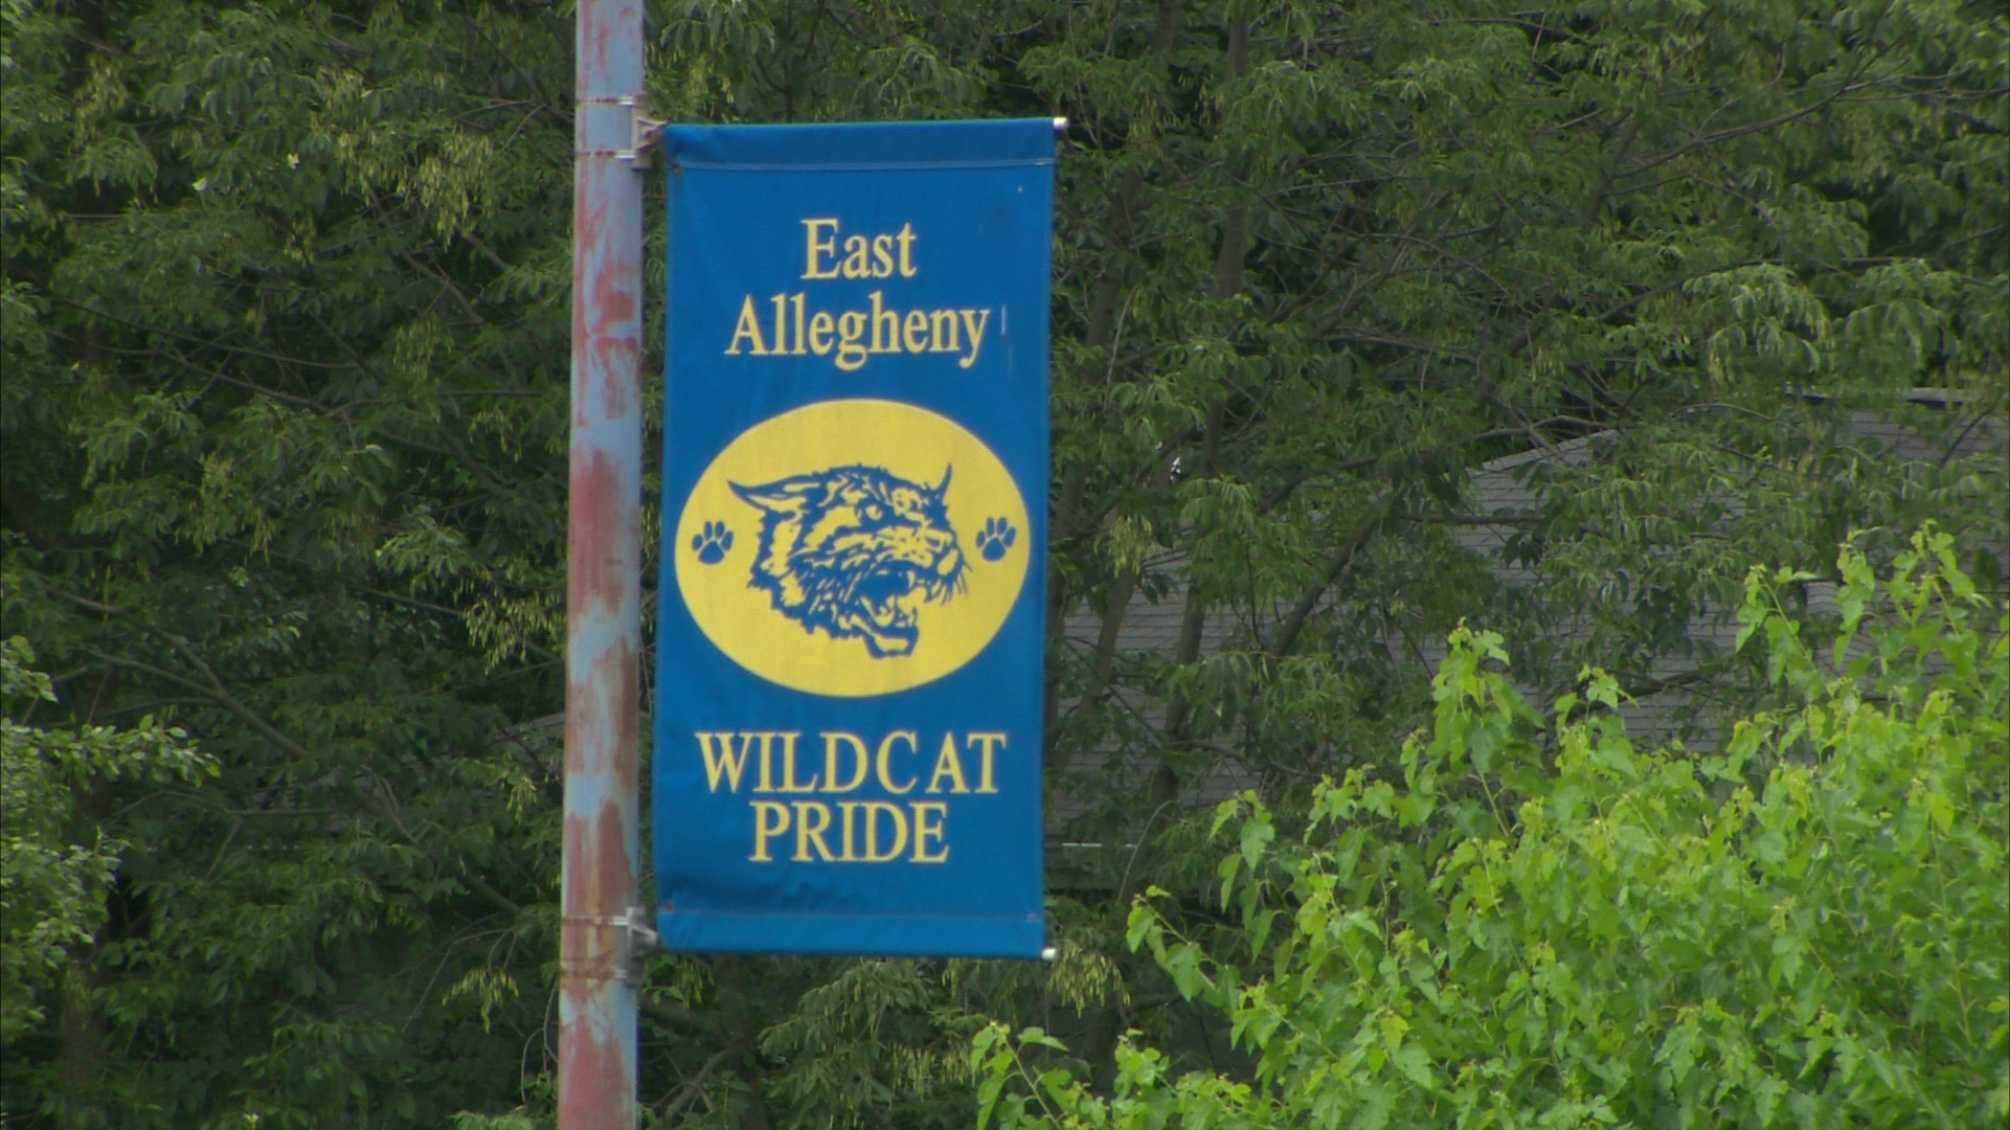 East Allegheny School District